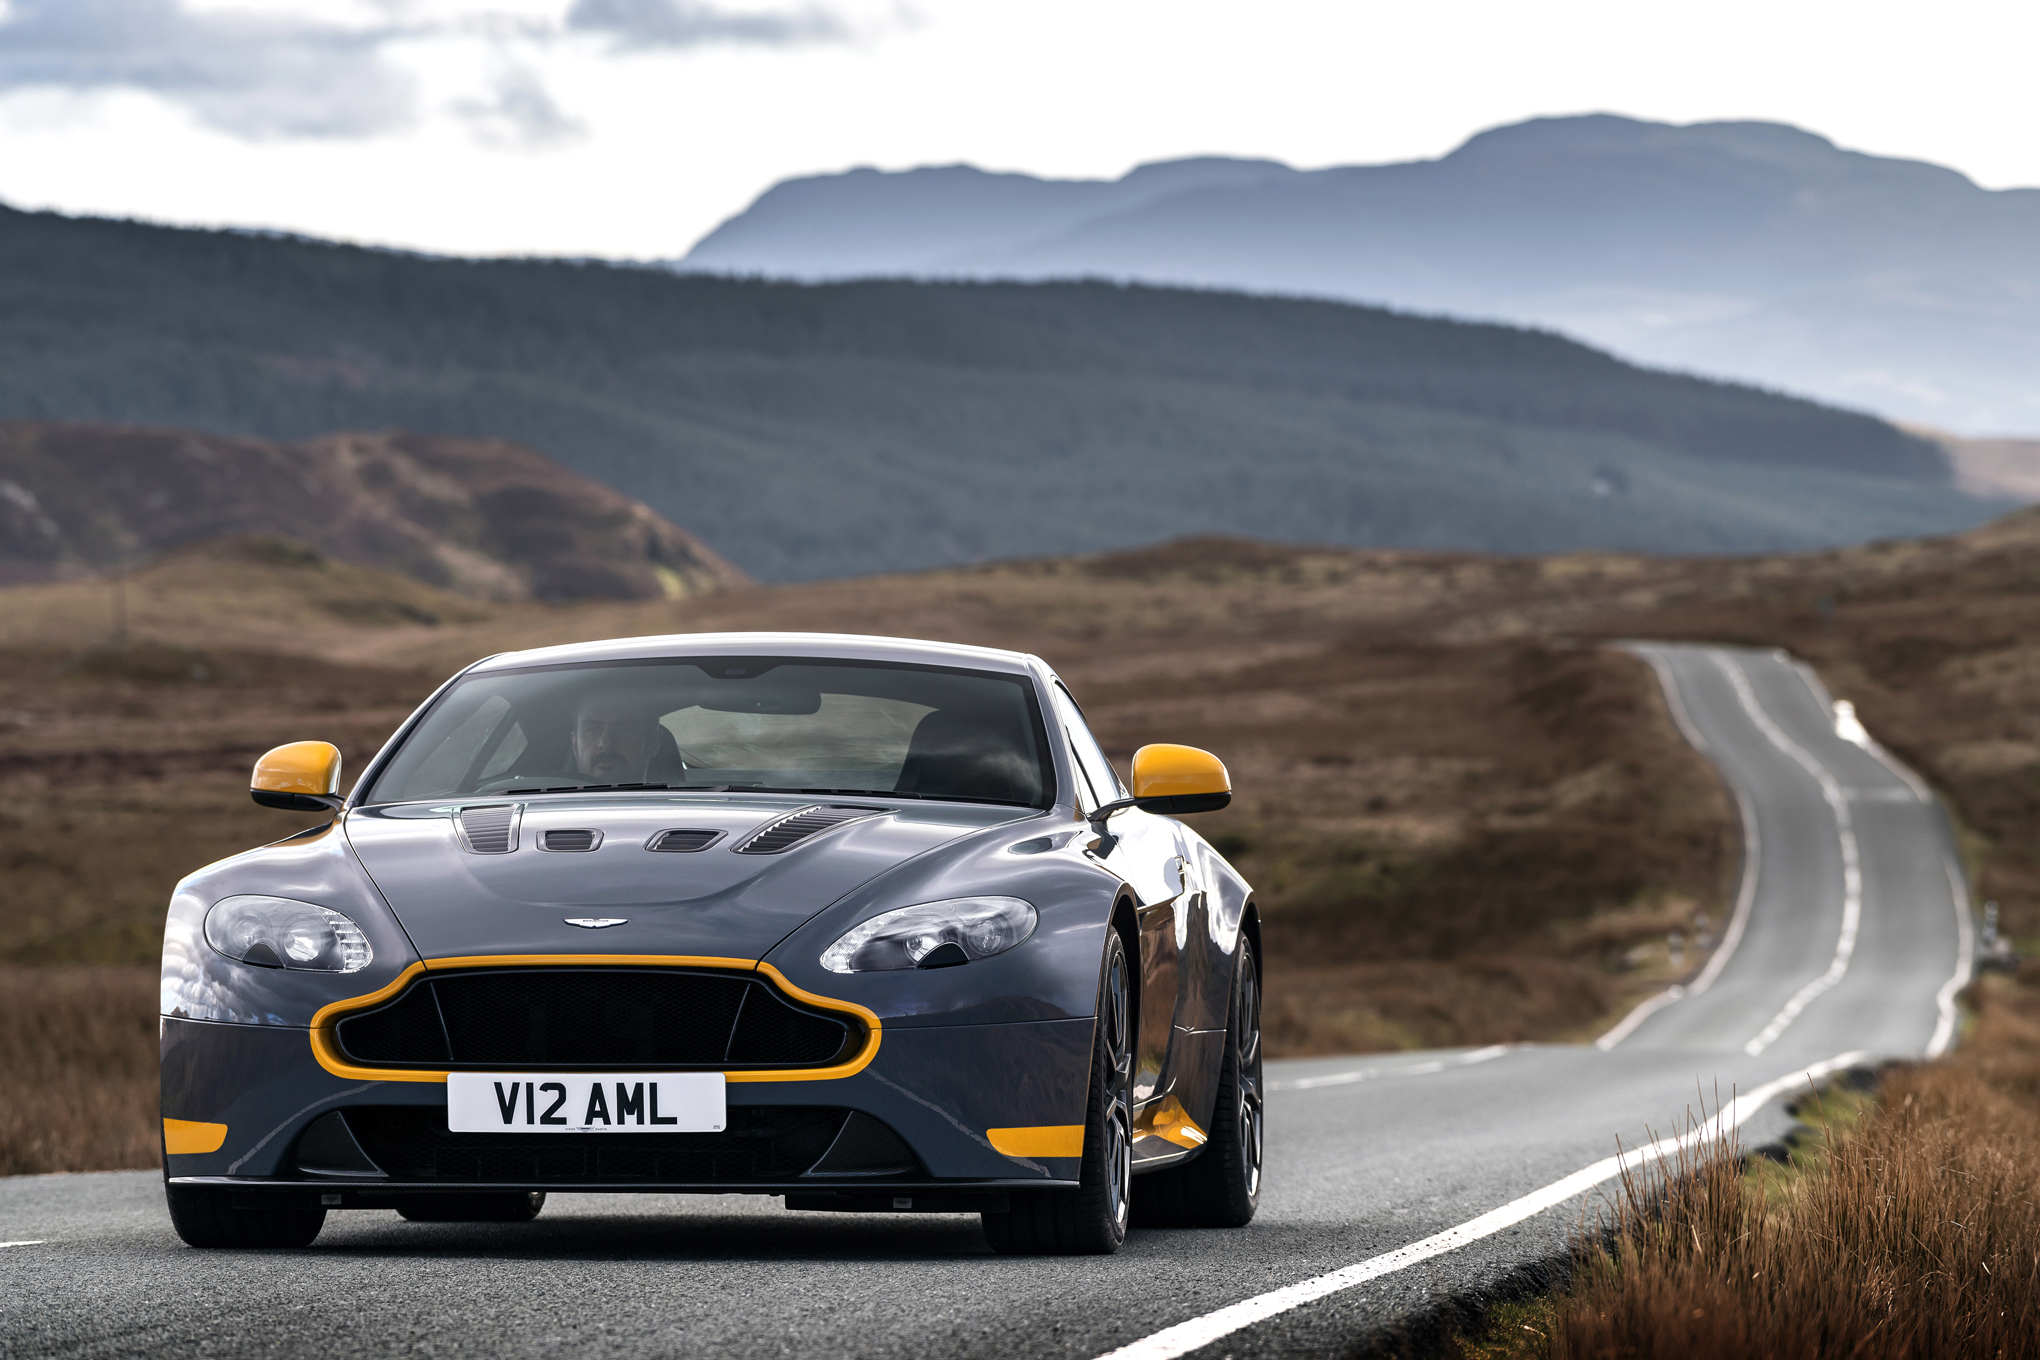 Amazing Aston Martin V12 Vantage Pictures & Backgrounds